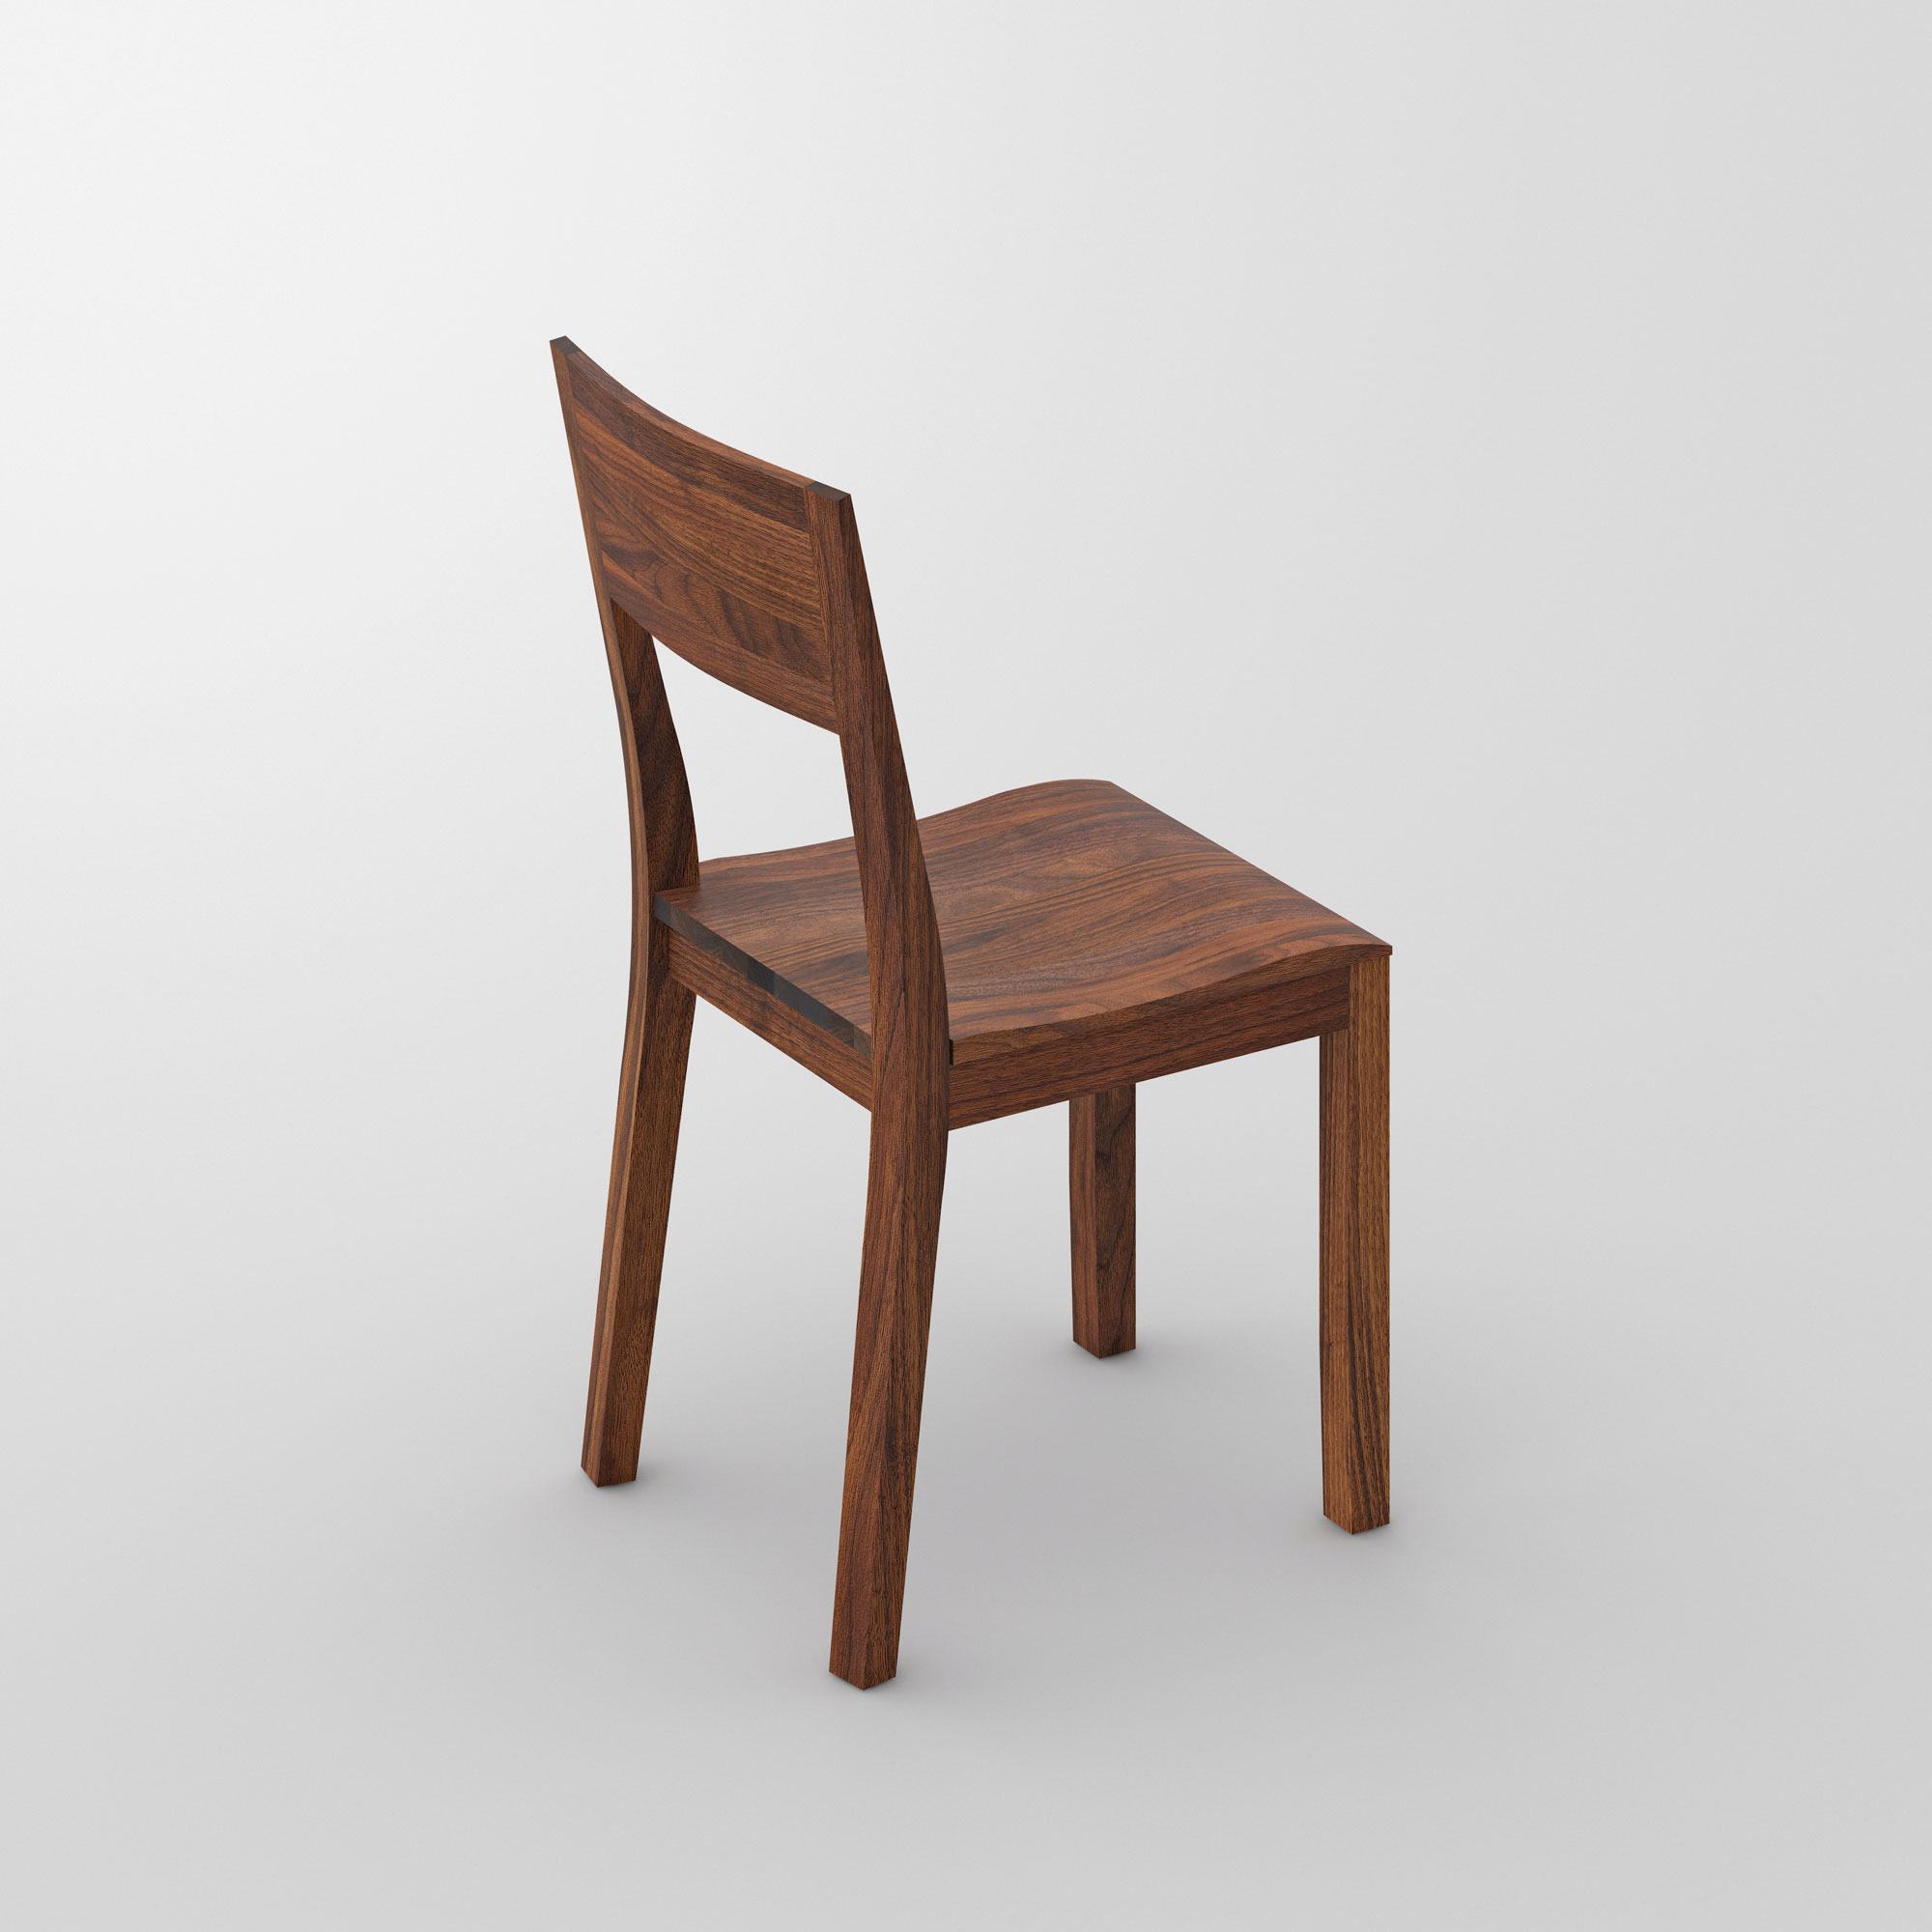 Dining Room Wooden Chair NOMI cam3 custom made in solid wood by vitamin design